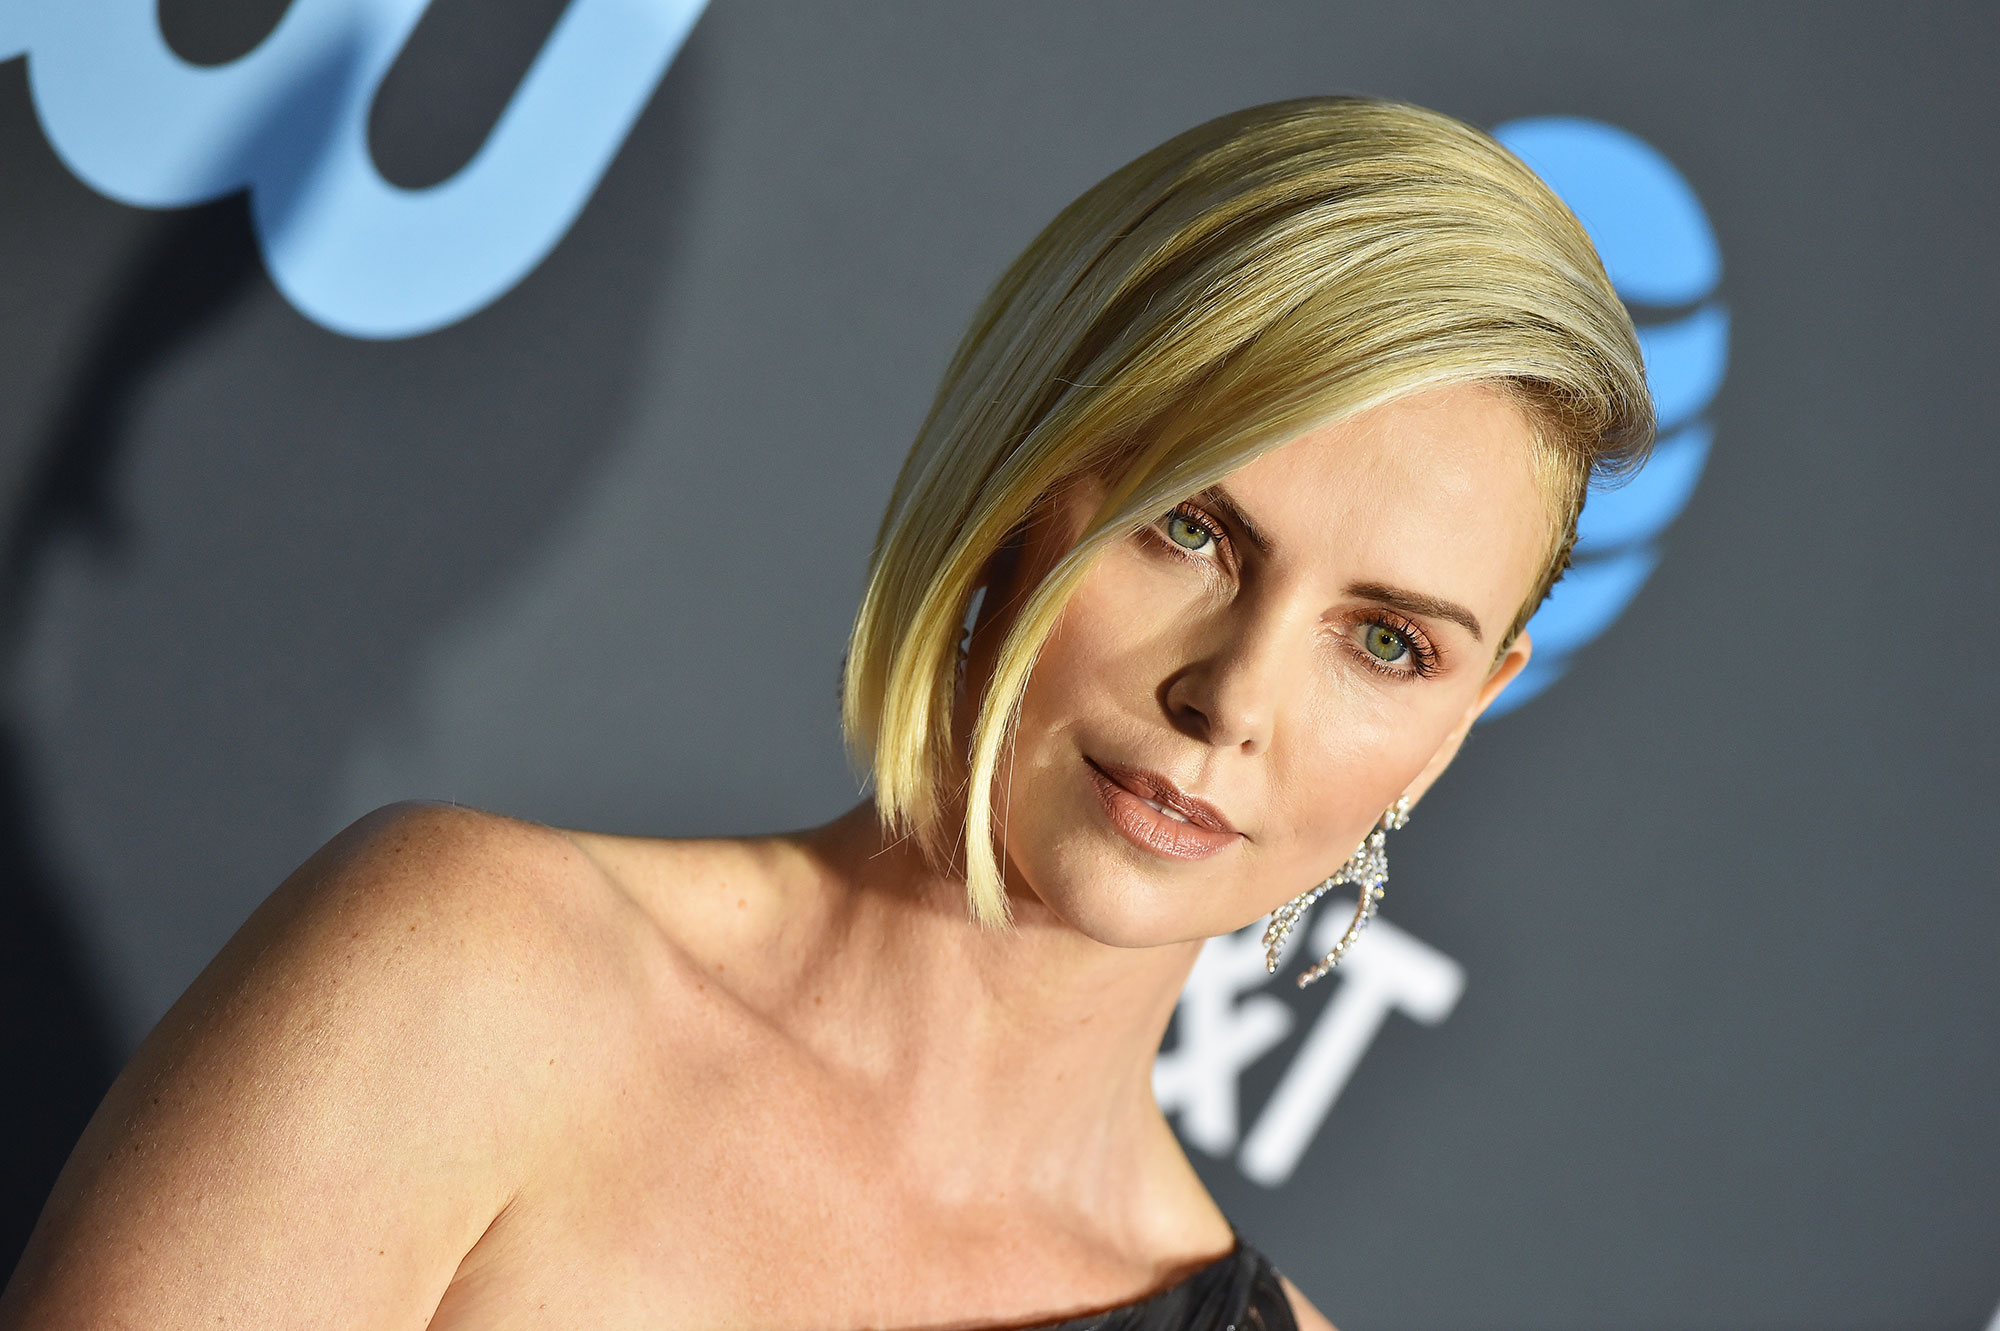 Charlize Theron Critics' Choice Awards 2019 - With a sideswept intricataly woven updo and gilded bar embellishment by hair pro Adir Abergel using Virtue Labs products and bronzed apricot makeup by Kate Lee using Chanel.